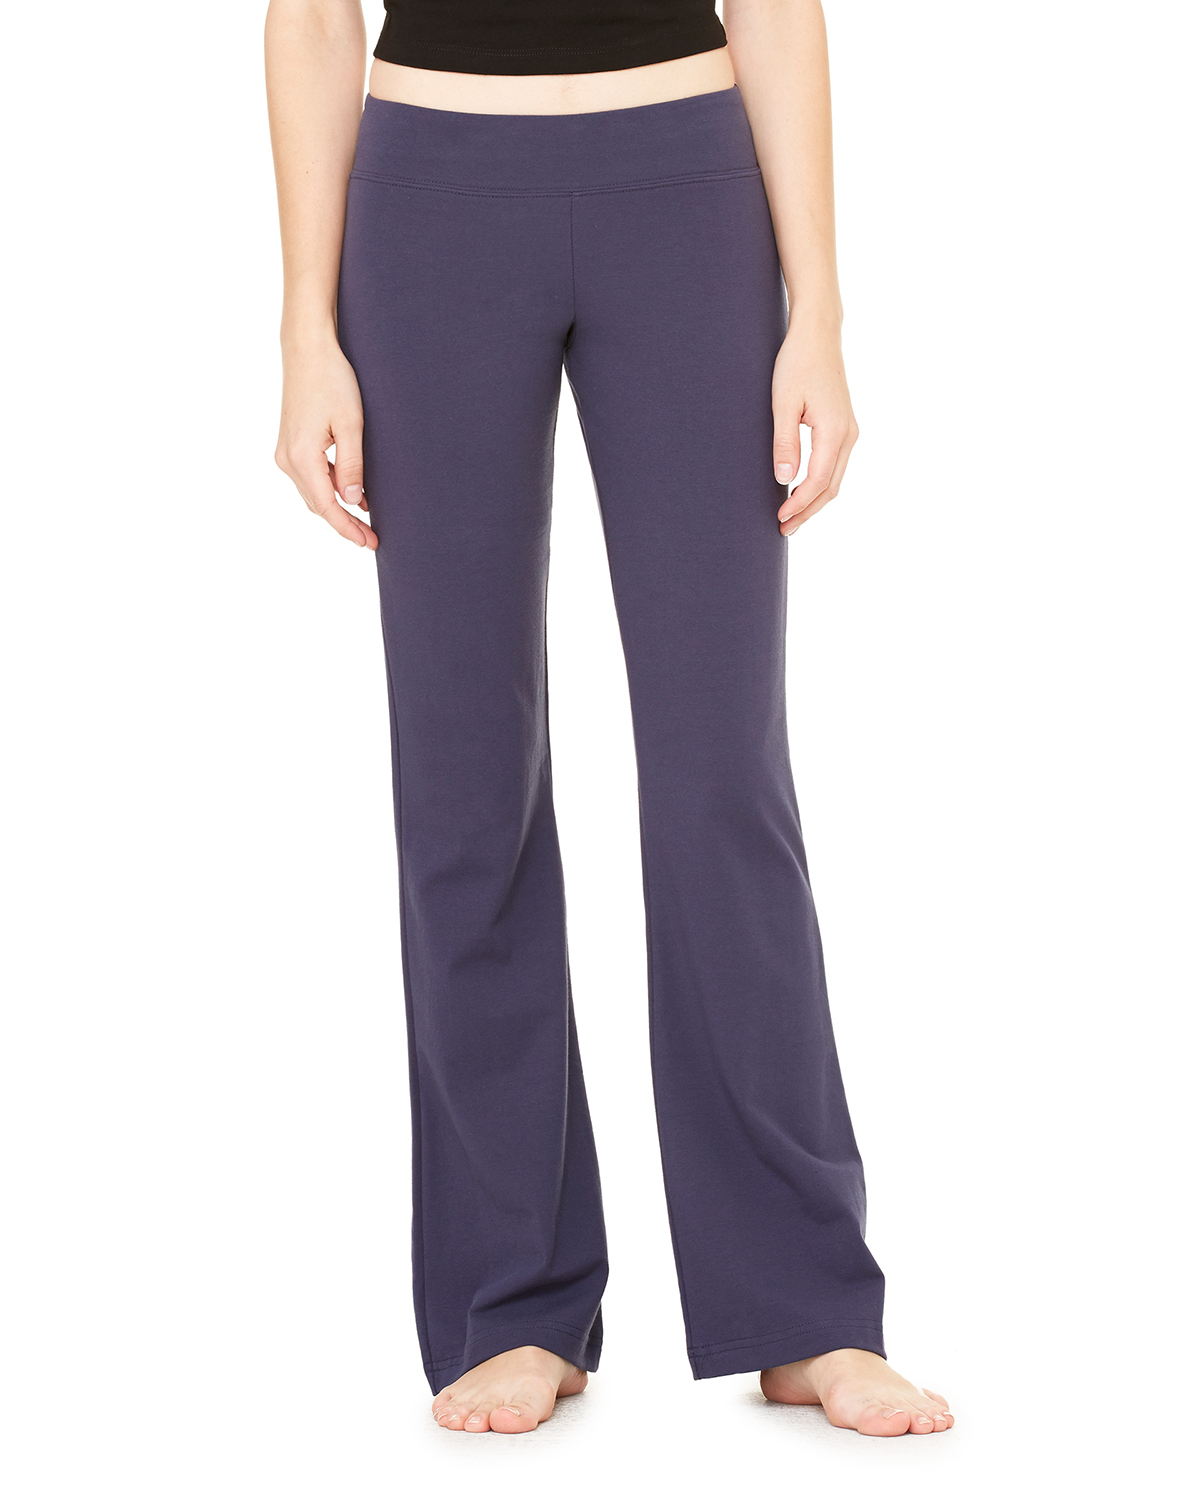 Bella 810  Women's Cotton/Spandex Yoga Pants